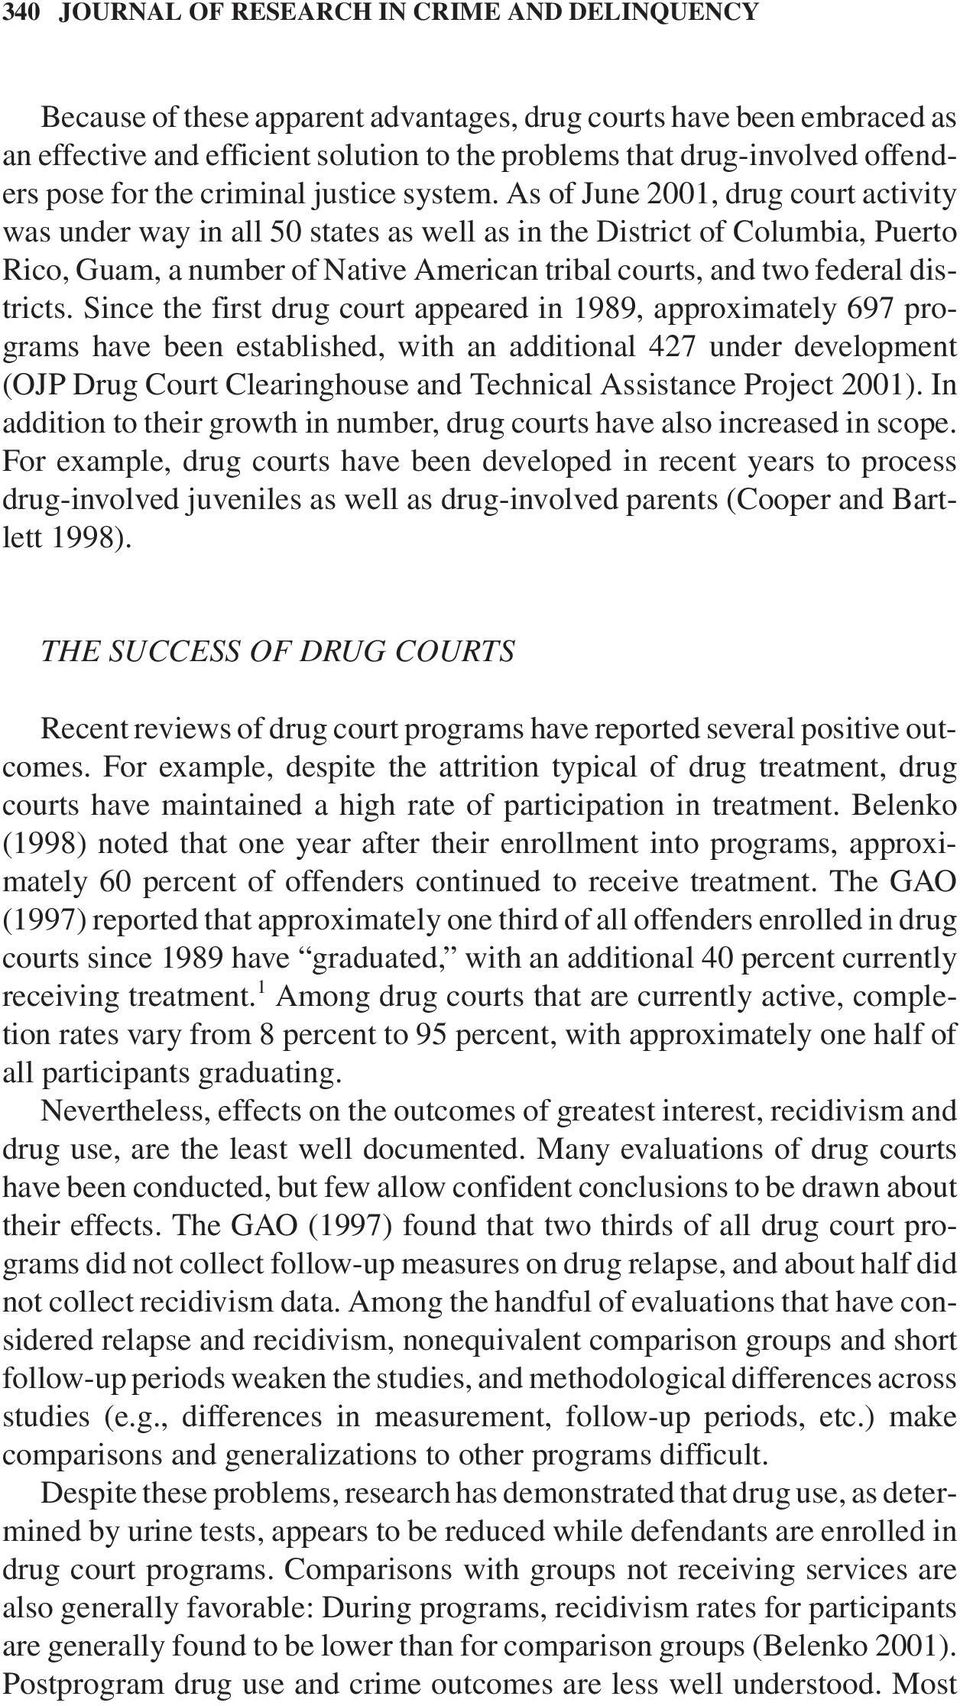 As of June 2001,drug court activity was under way in all 50 states as well as in the District of Columbia,Puerto Rico,Guam,a number of Native American tribal courts,and two federal districts.